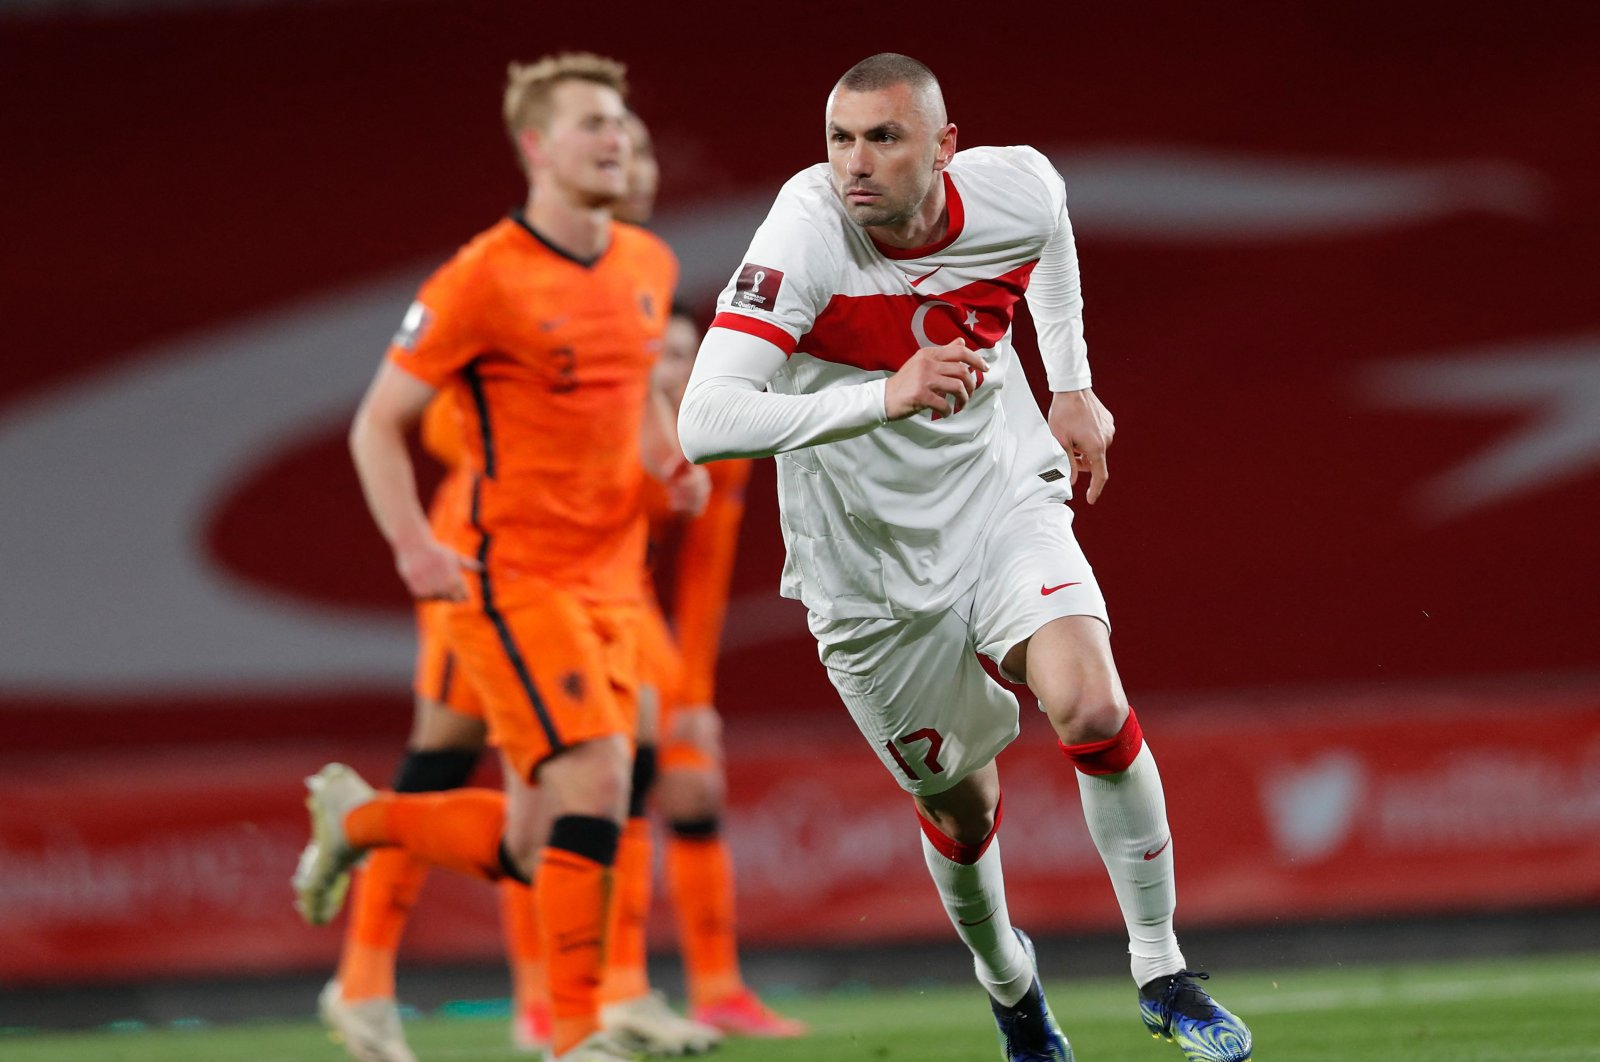 Turkey forward Burak Yılmaz celebrates after scoring his second goal during the FIFA World Cup Qatar 2022 qualification Group G match against The Netherlands at the Atatürk Olympic Stadium, in Istanbul, Turkey, March 24, 2021. (AFP Photo)